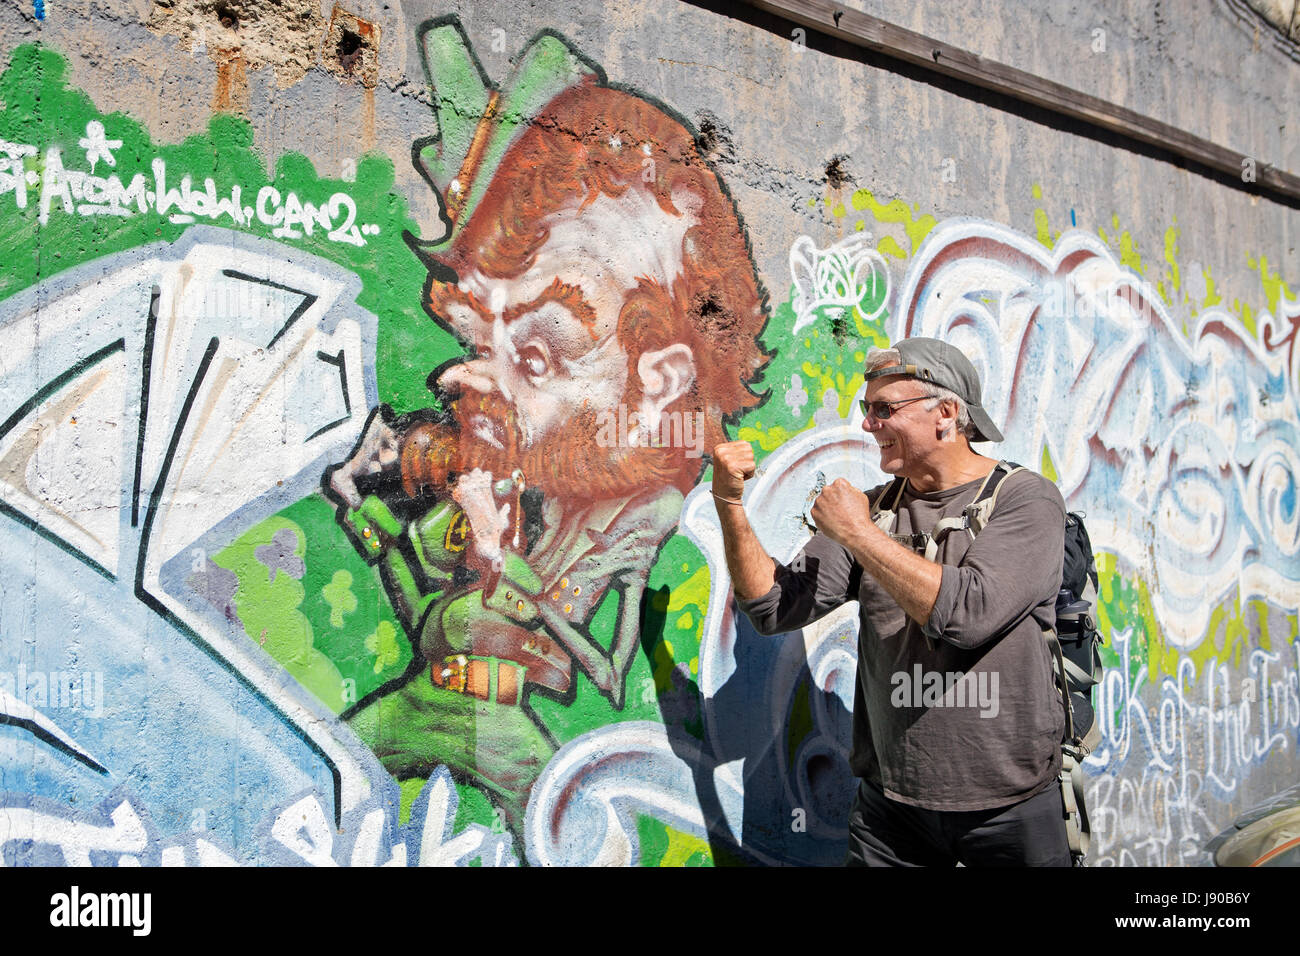 Irish Man with fists up next to Irish caricature graffiti on the wall in Wellington New Zealand - Stock Image